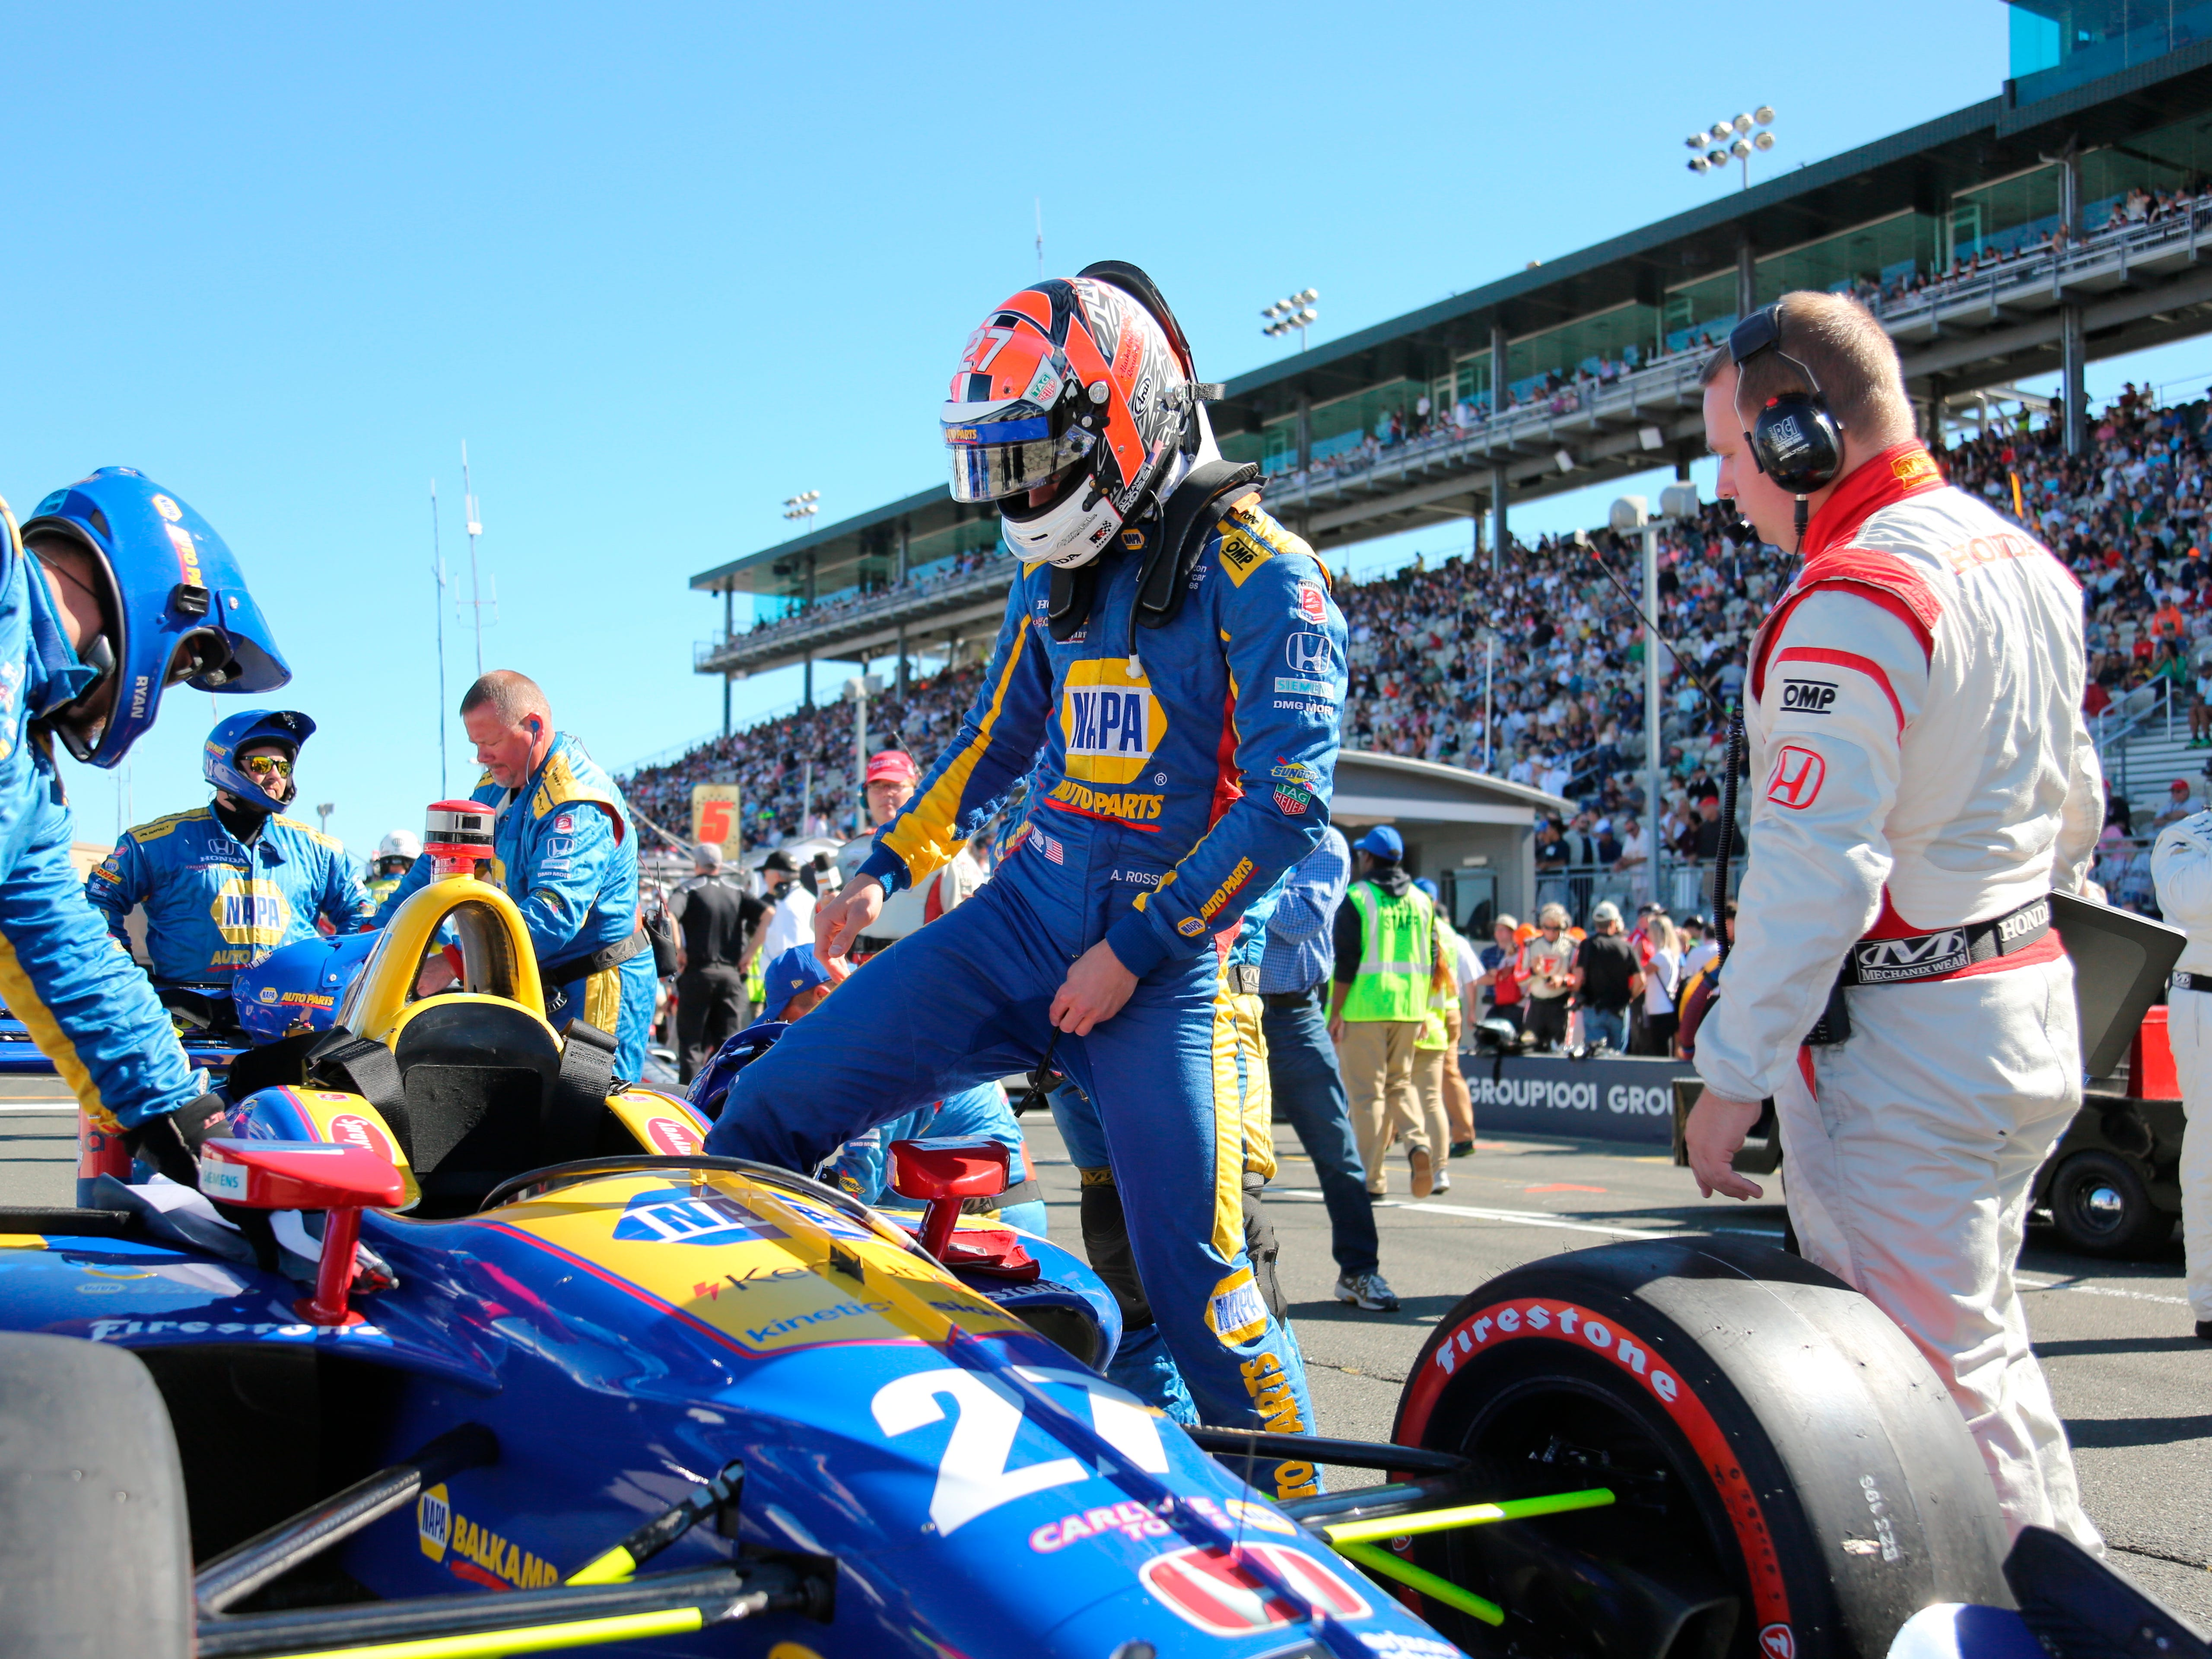 Nevada County's Alexander Rossi readies to step into his IndyCar during his last race of the 2018 Verizon IndyCar Series Sunday, Sept. 16, 2018 in Sonoma, Calif.